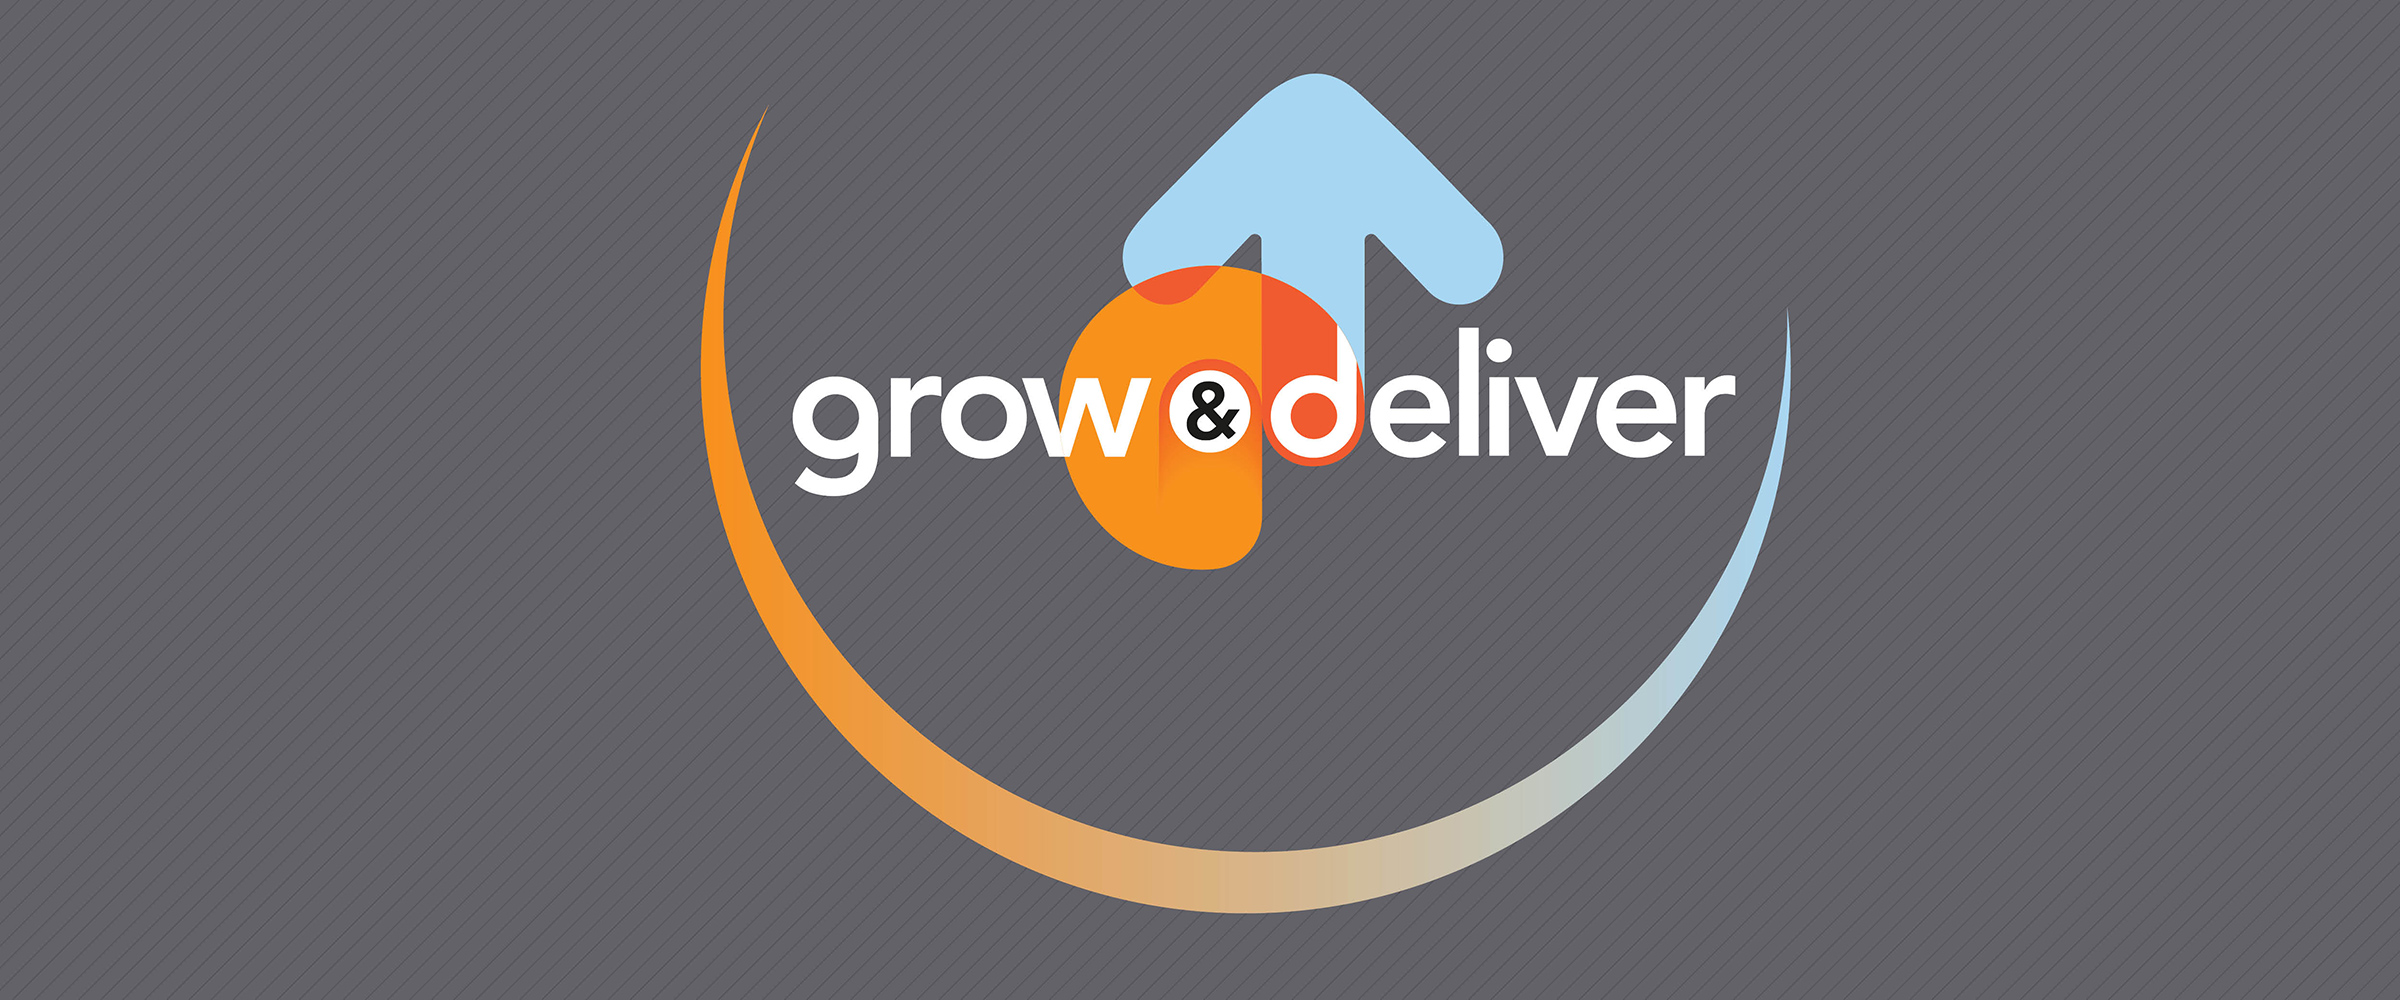 tfs-programm grow&deliver